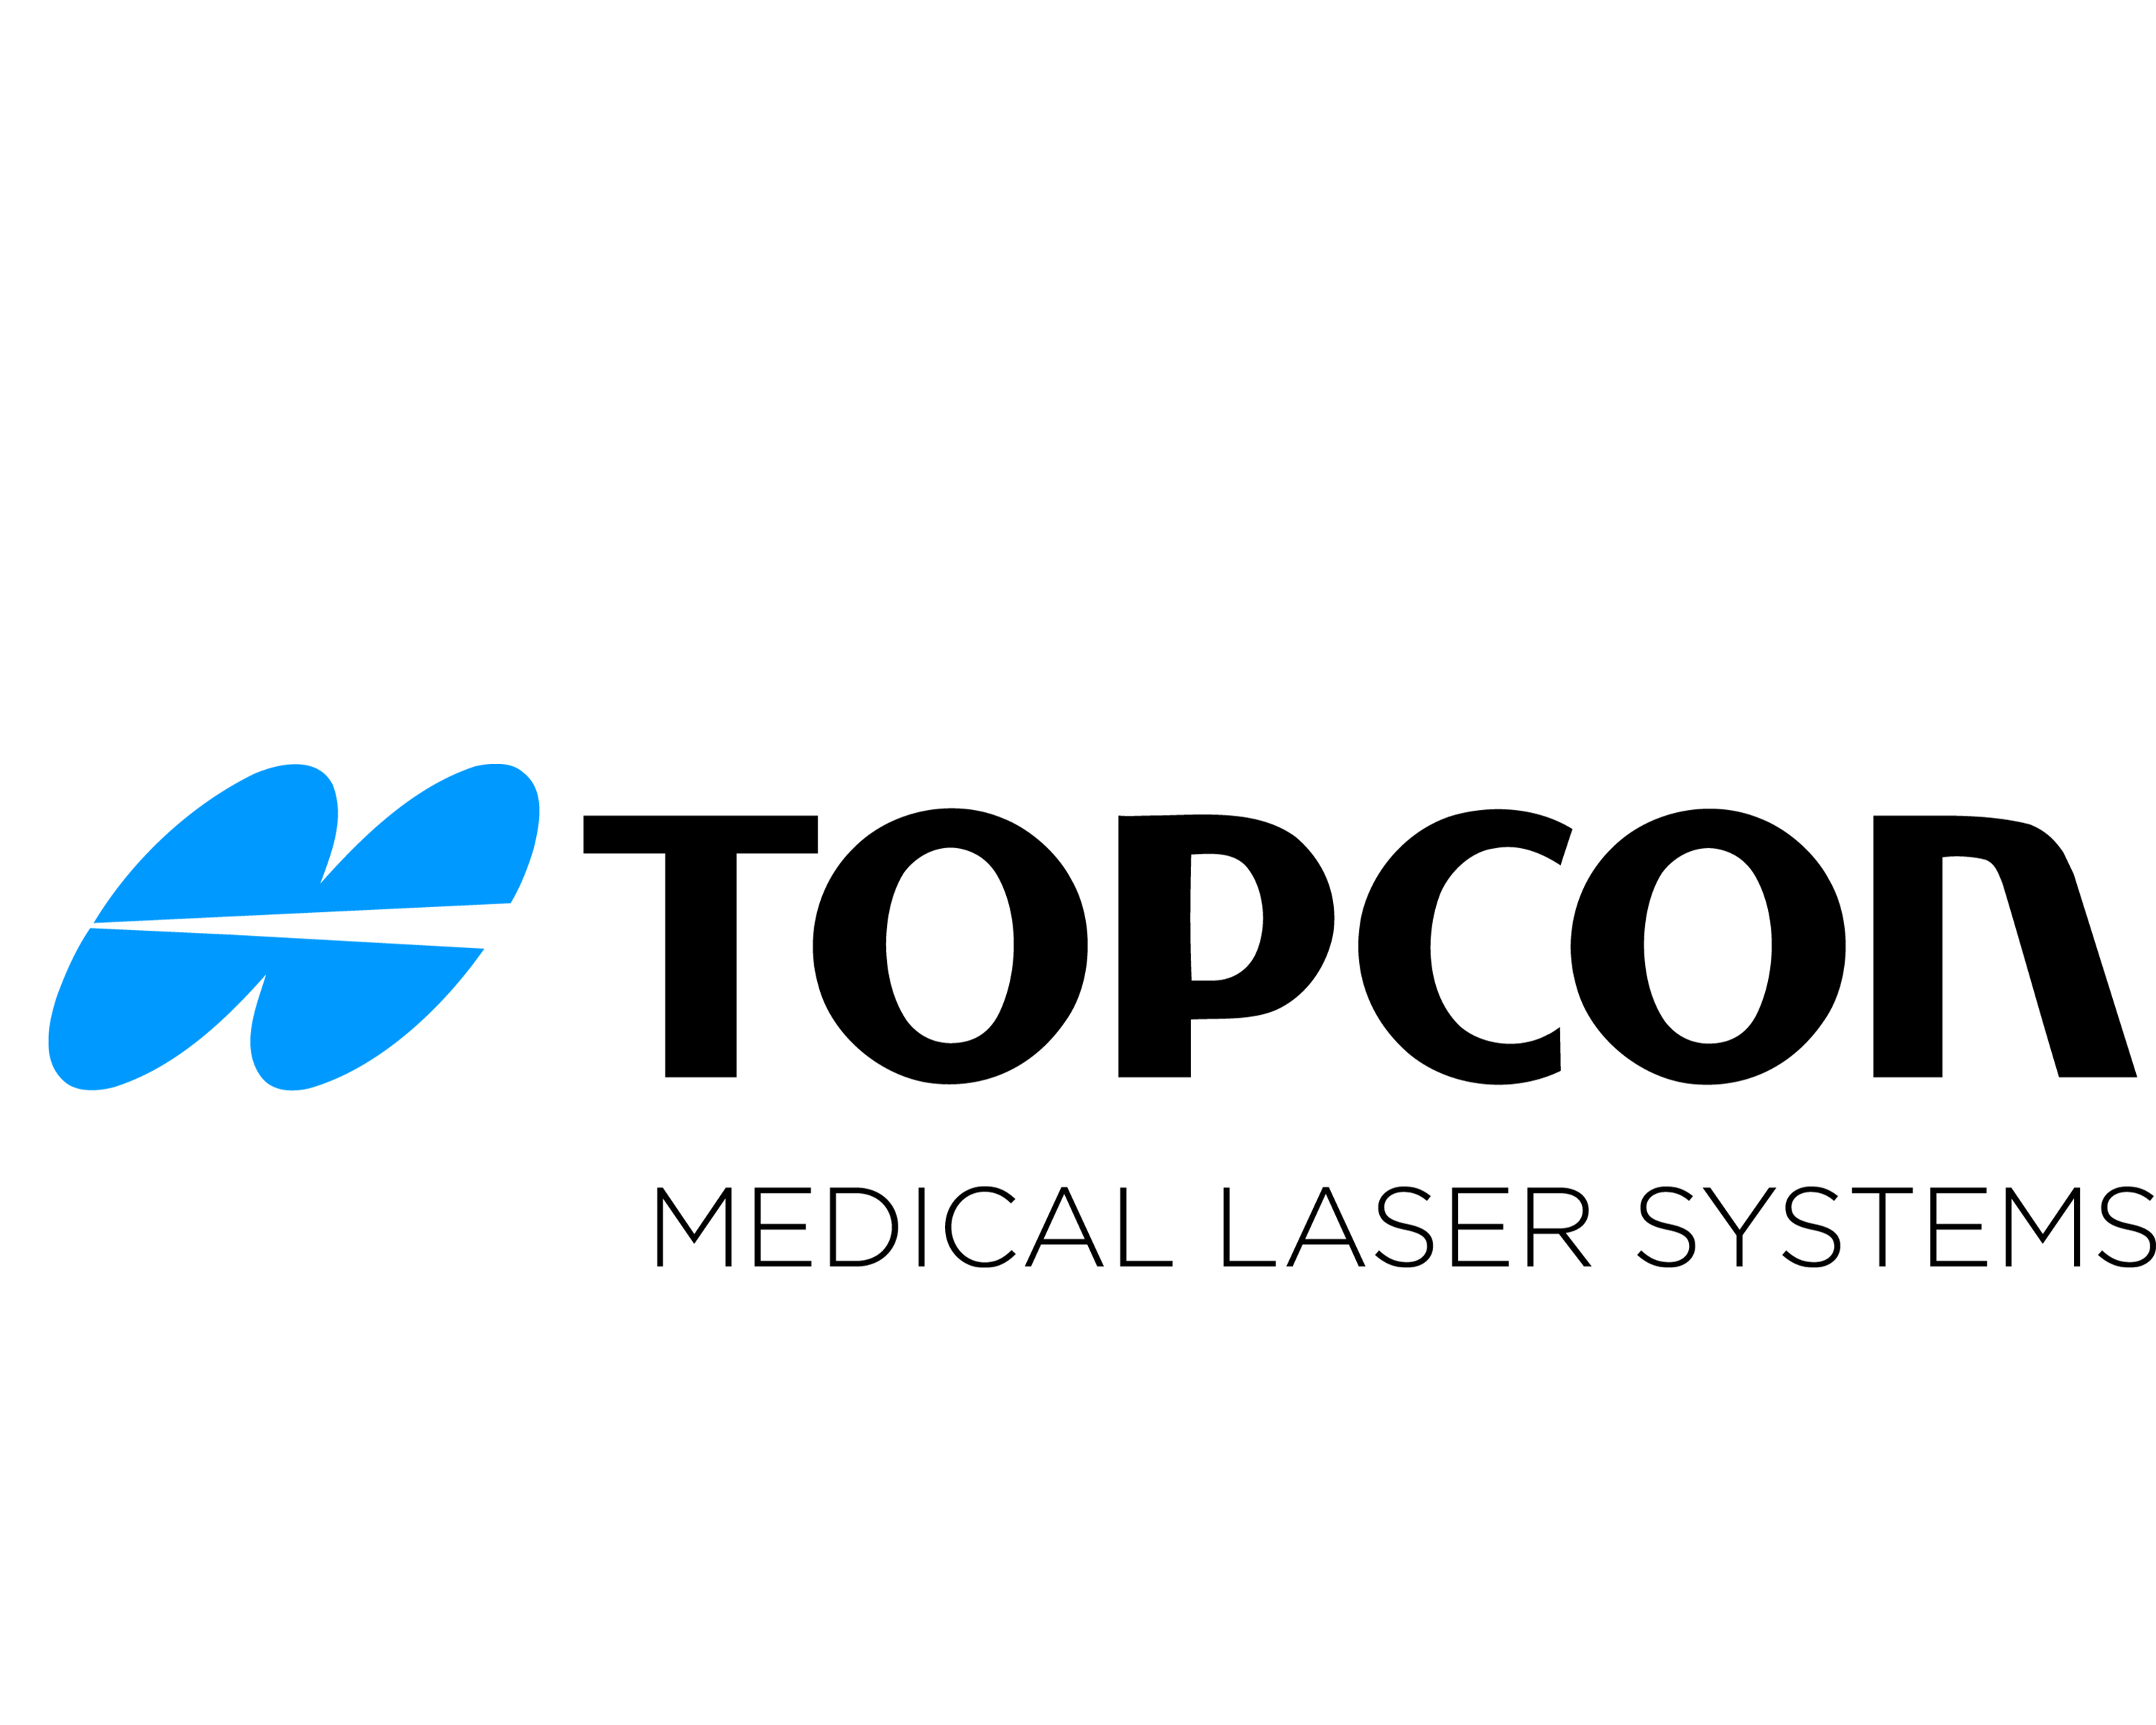 Topcon Medical Laser Systems